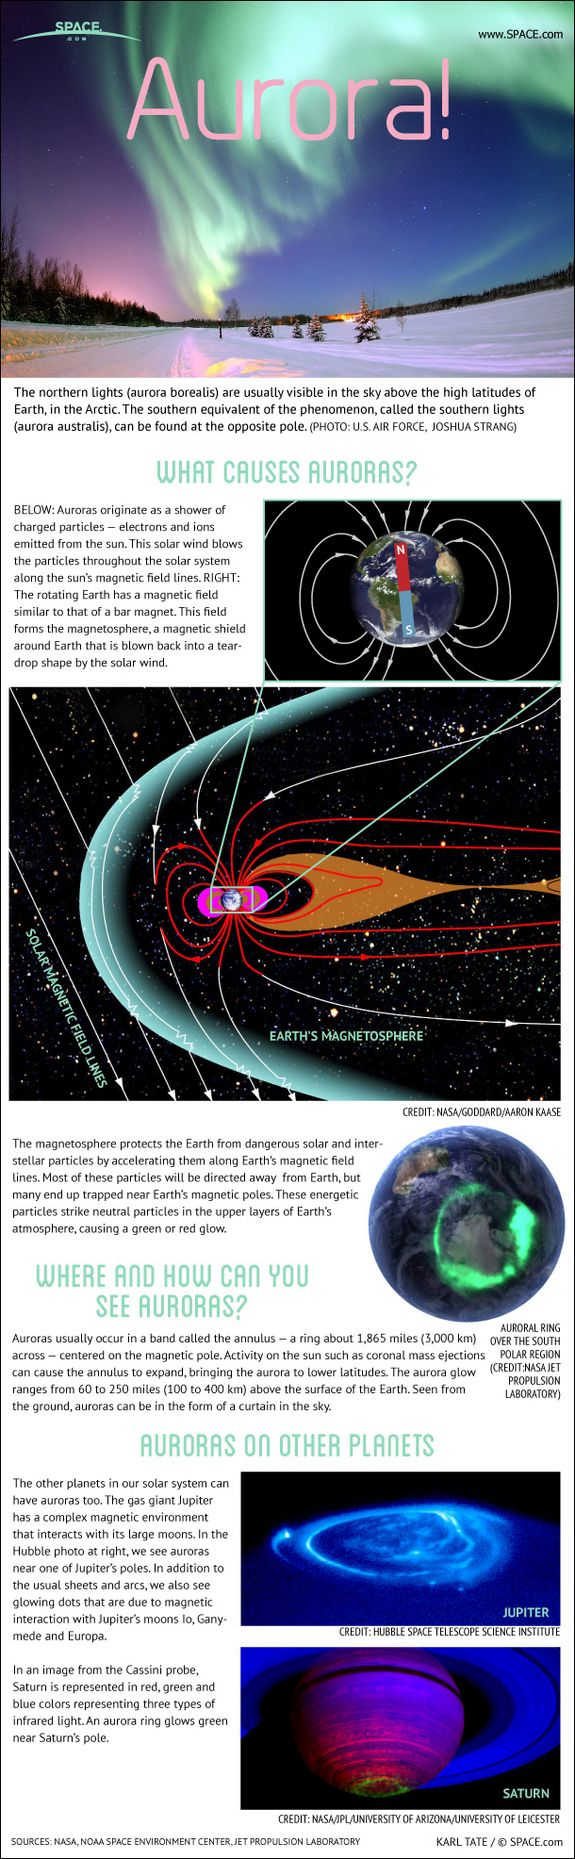 The northern lights are more formally known as auroras, and are caused by interactions between the solar wind and the Earth's magnetic field. #infographic